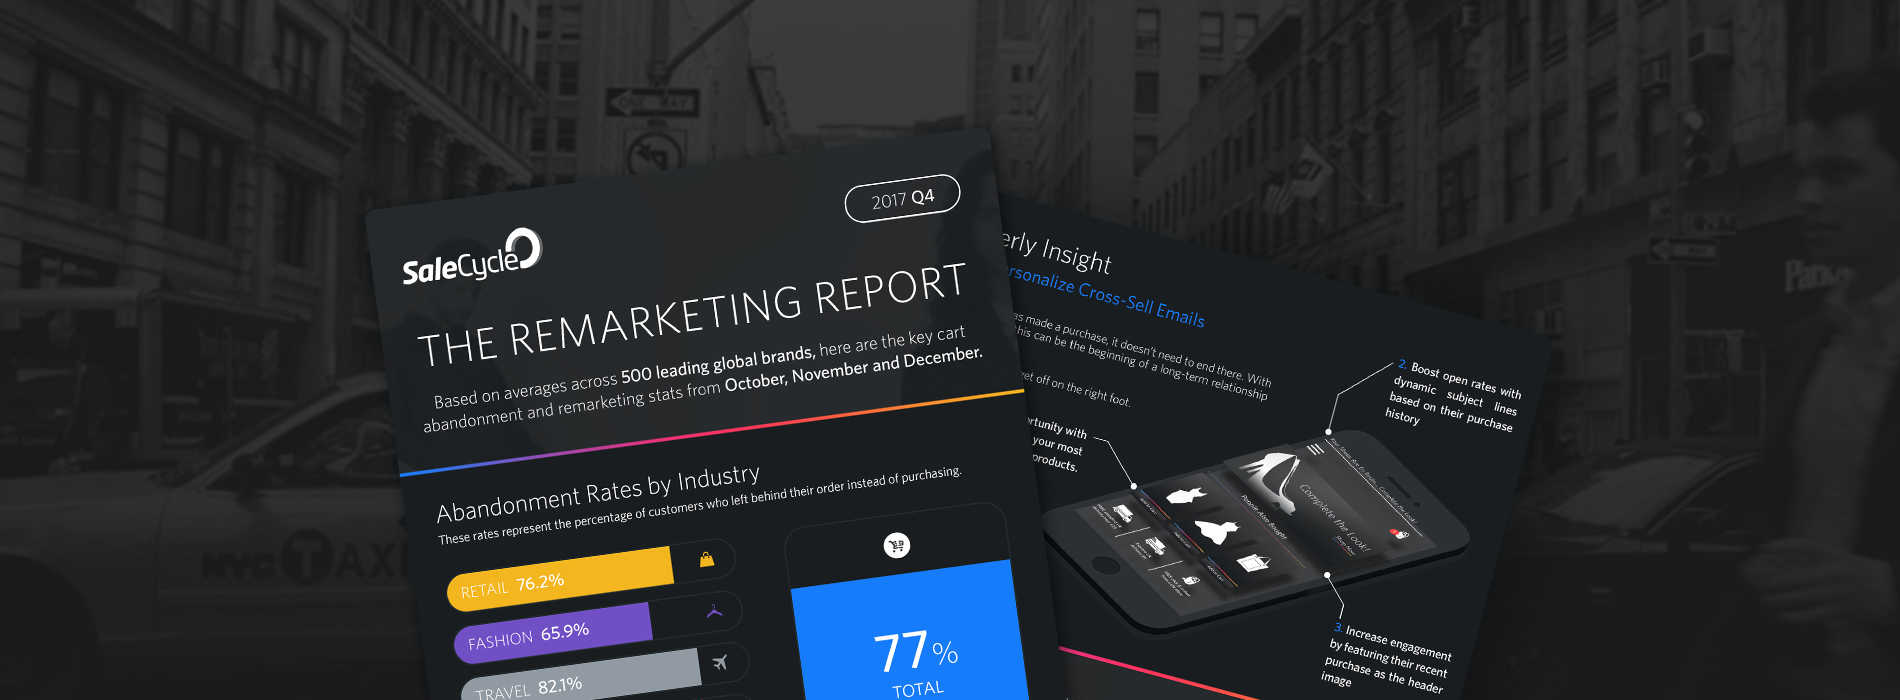 [Infographic] The Remarketing Report – Q4 2017